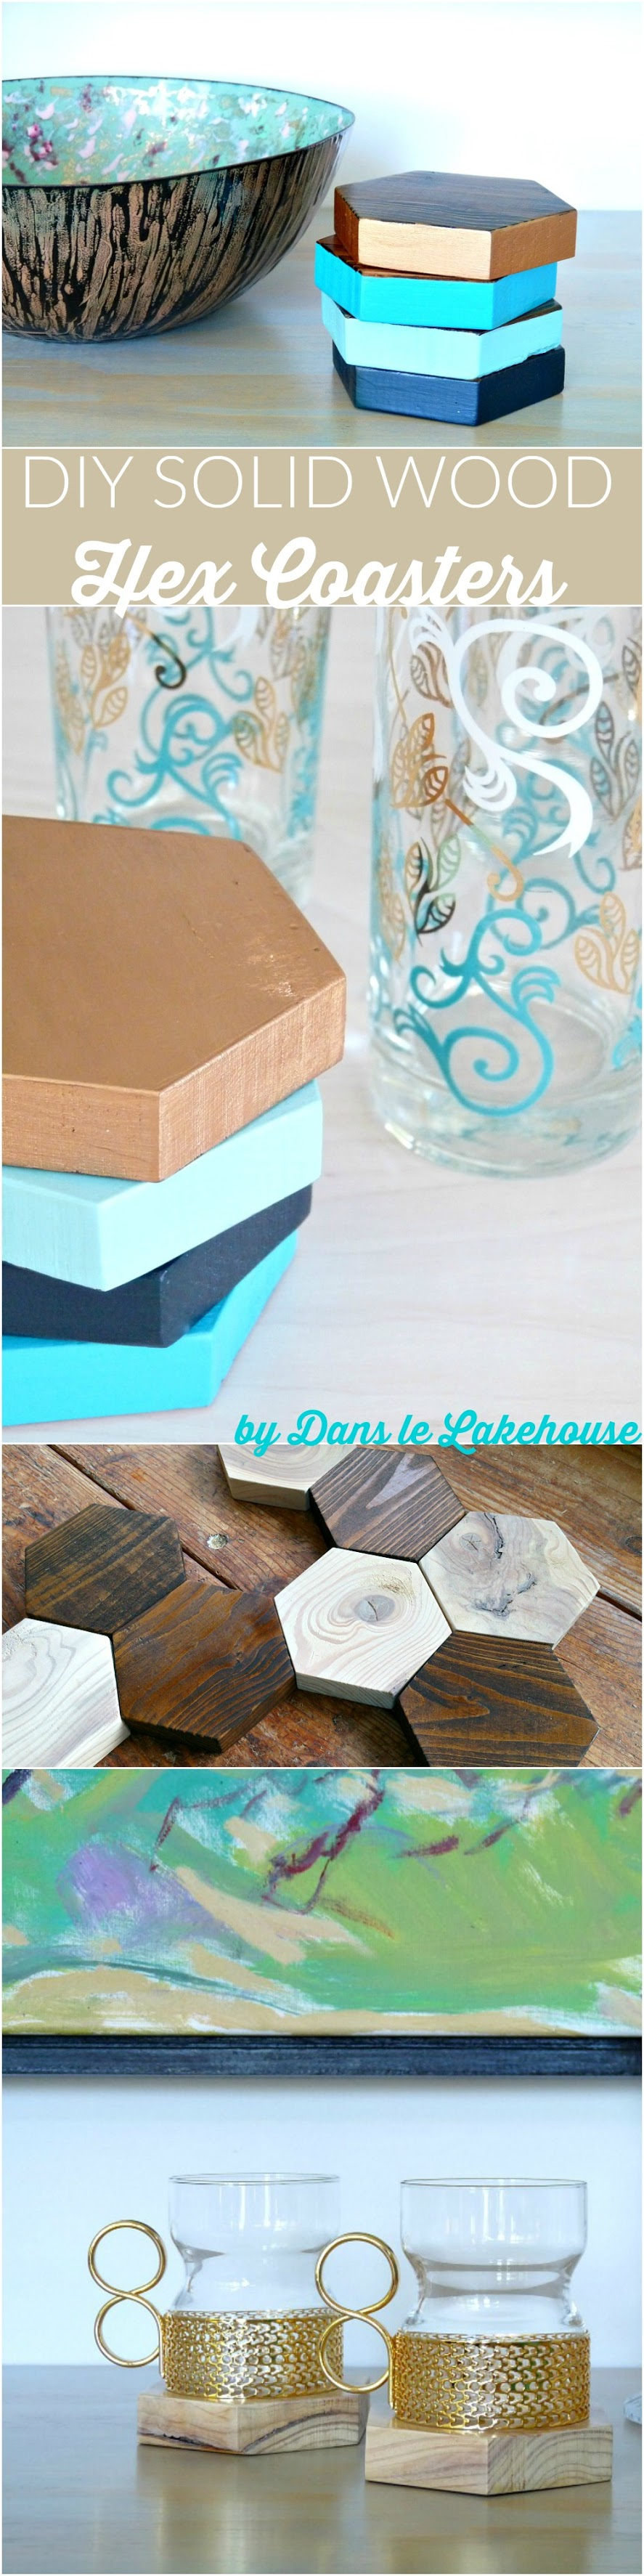 DIY Solid Wood Hex Coaster - Two Ways